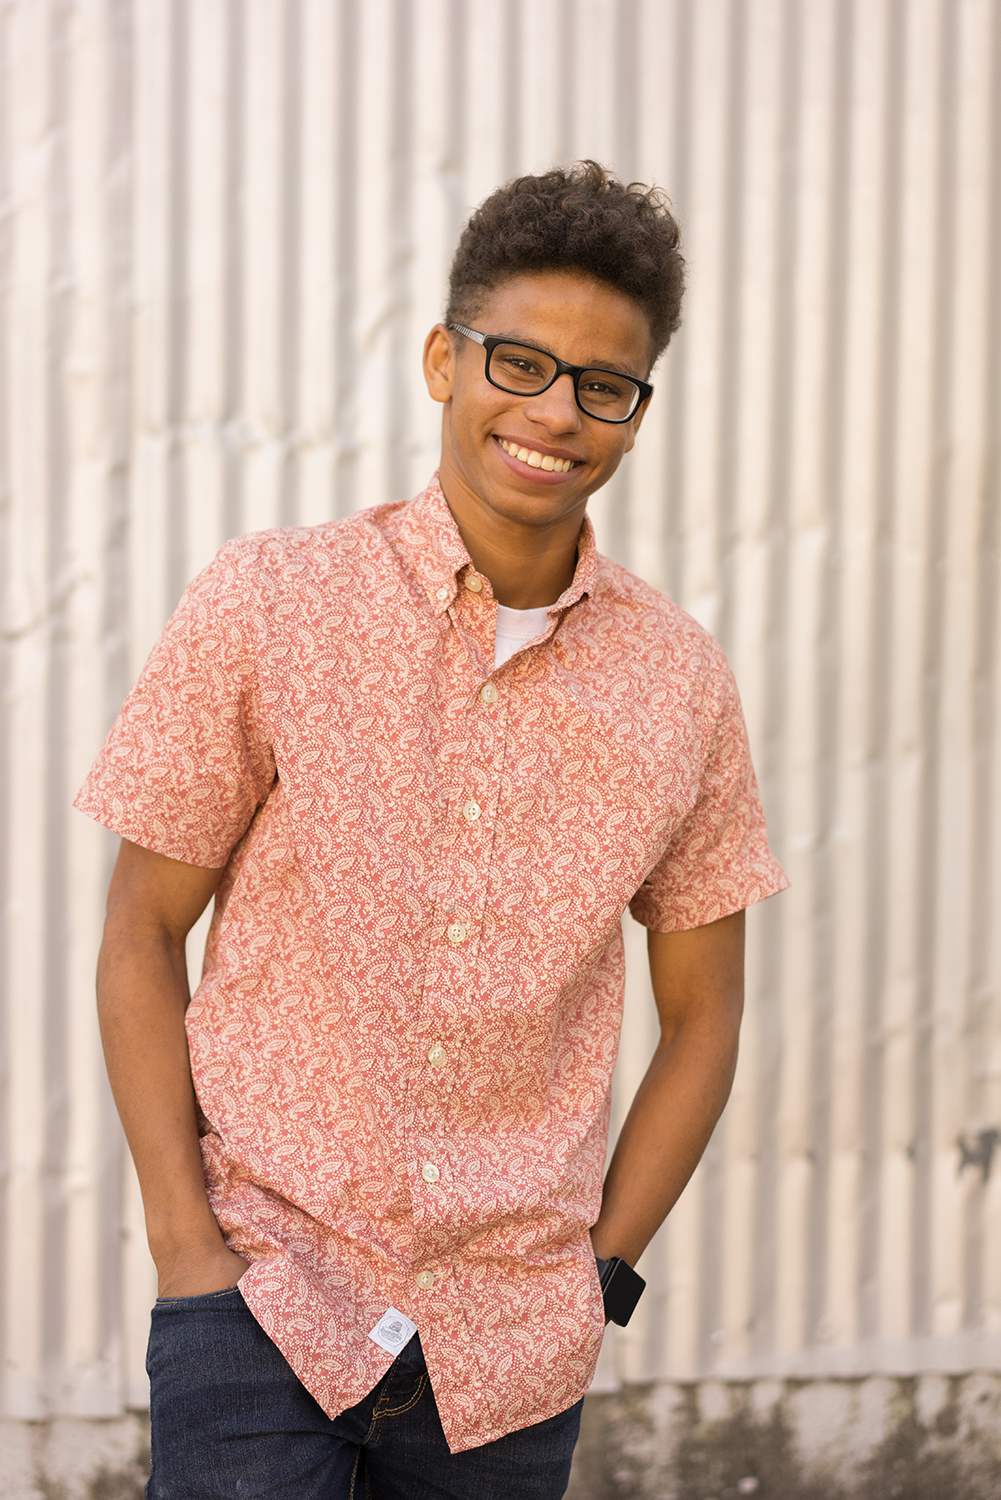 teen boy smiling at camera-San Ramon senior photography